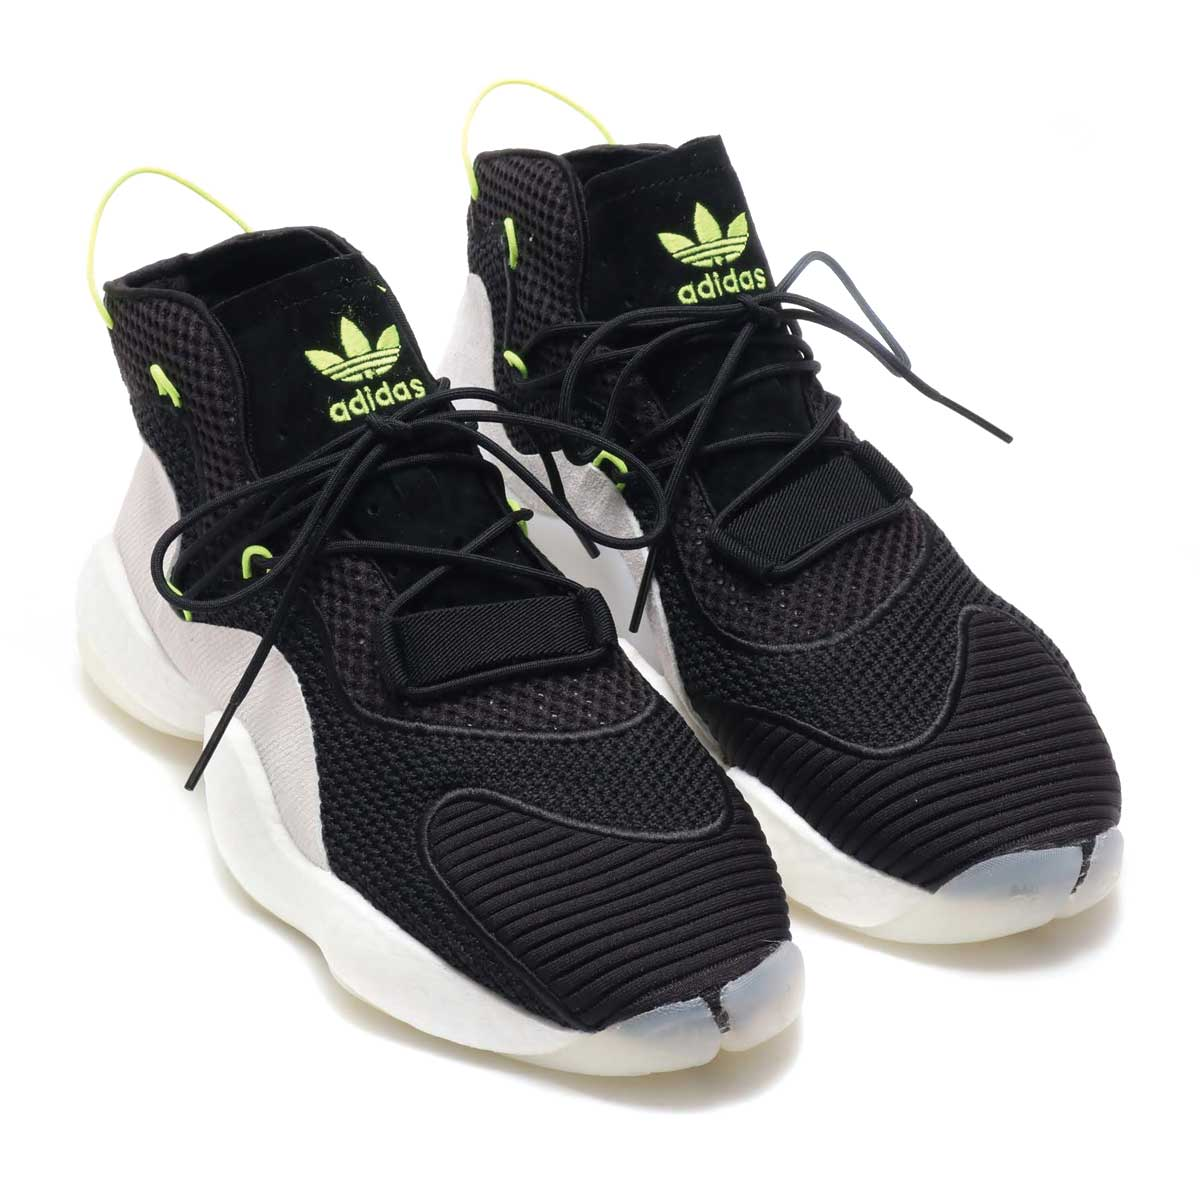 adidas Originals CRAZY BYW LVL I(アディダス オリジナルス クレイジーBYW LVL1)CORE BLACK/RUNNING WHITE/SOLAR YELLOW【メンズ スニーカー】18FW-I